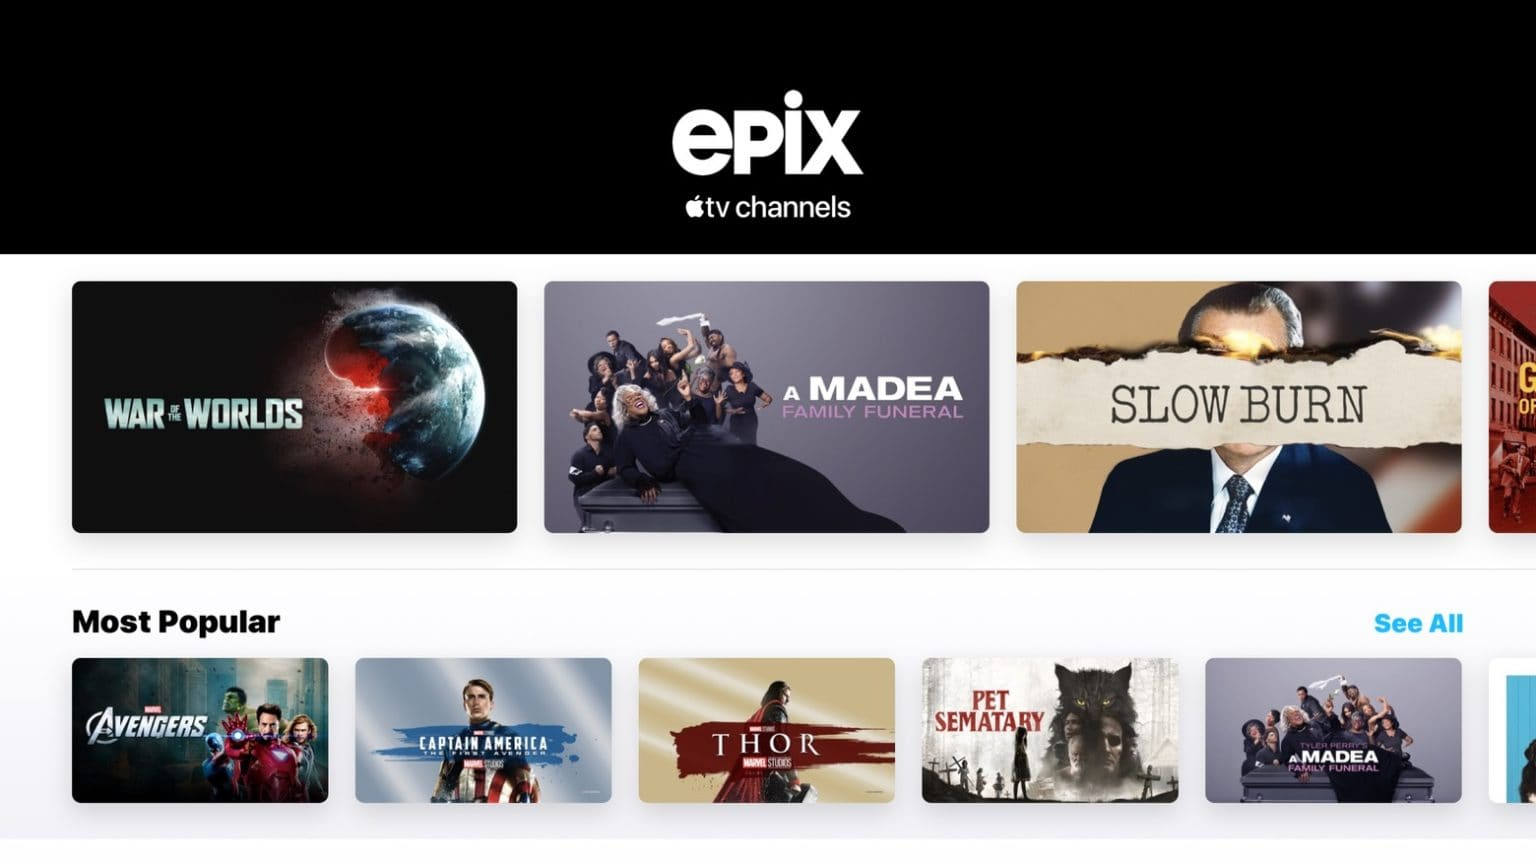 Epix is available through the Apple TV app.